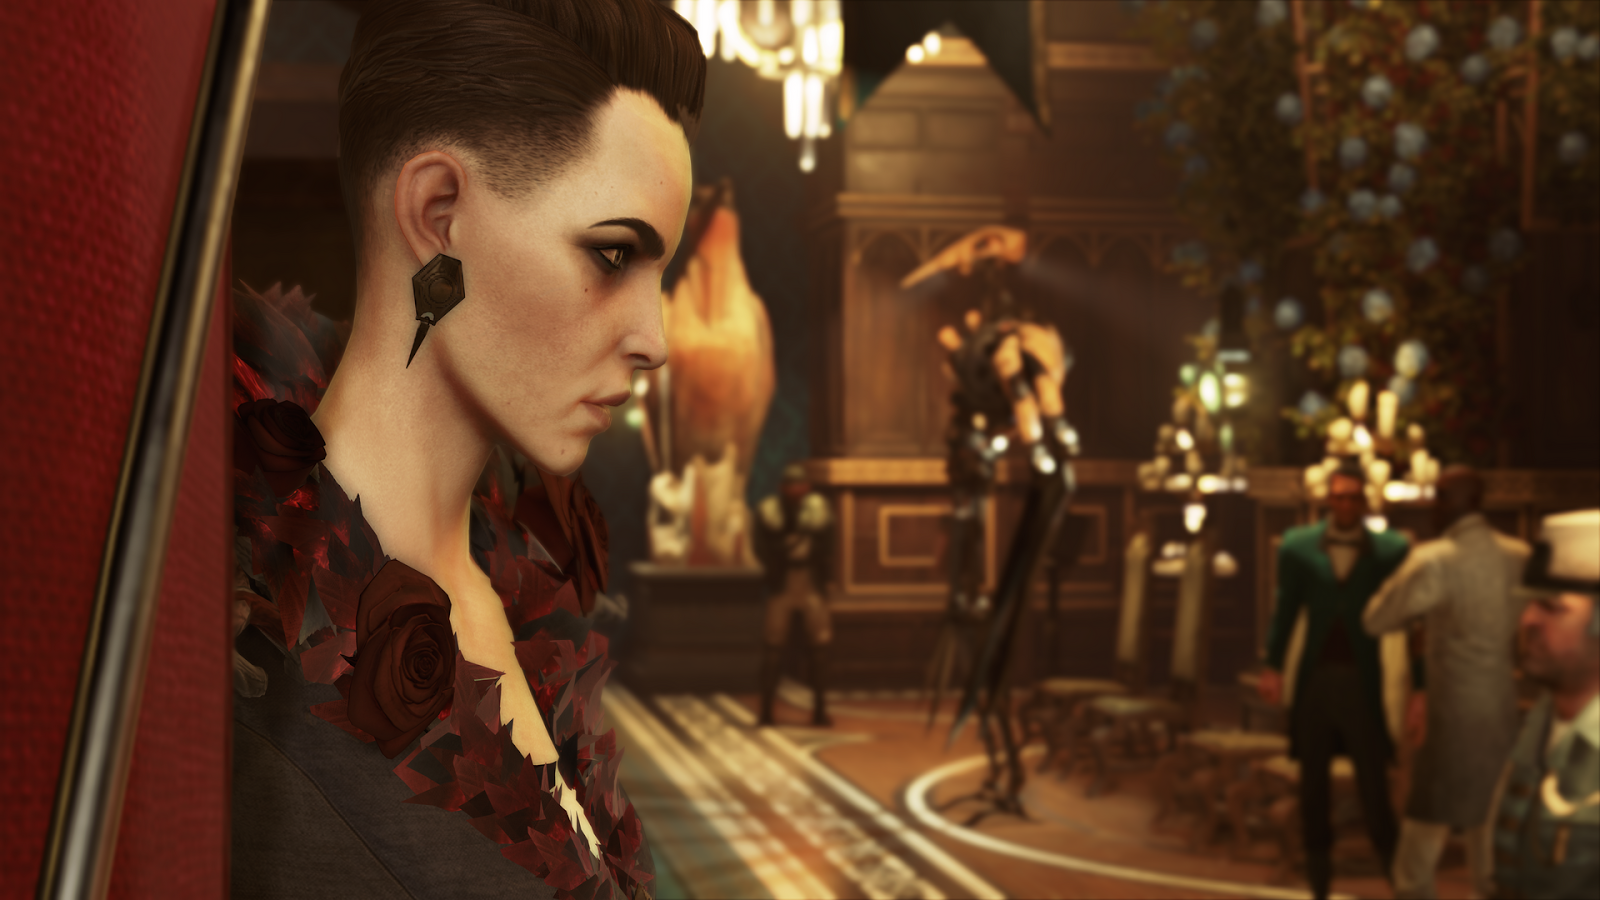 Dishonored 2 Delilah